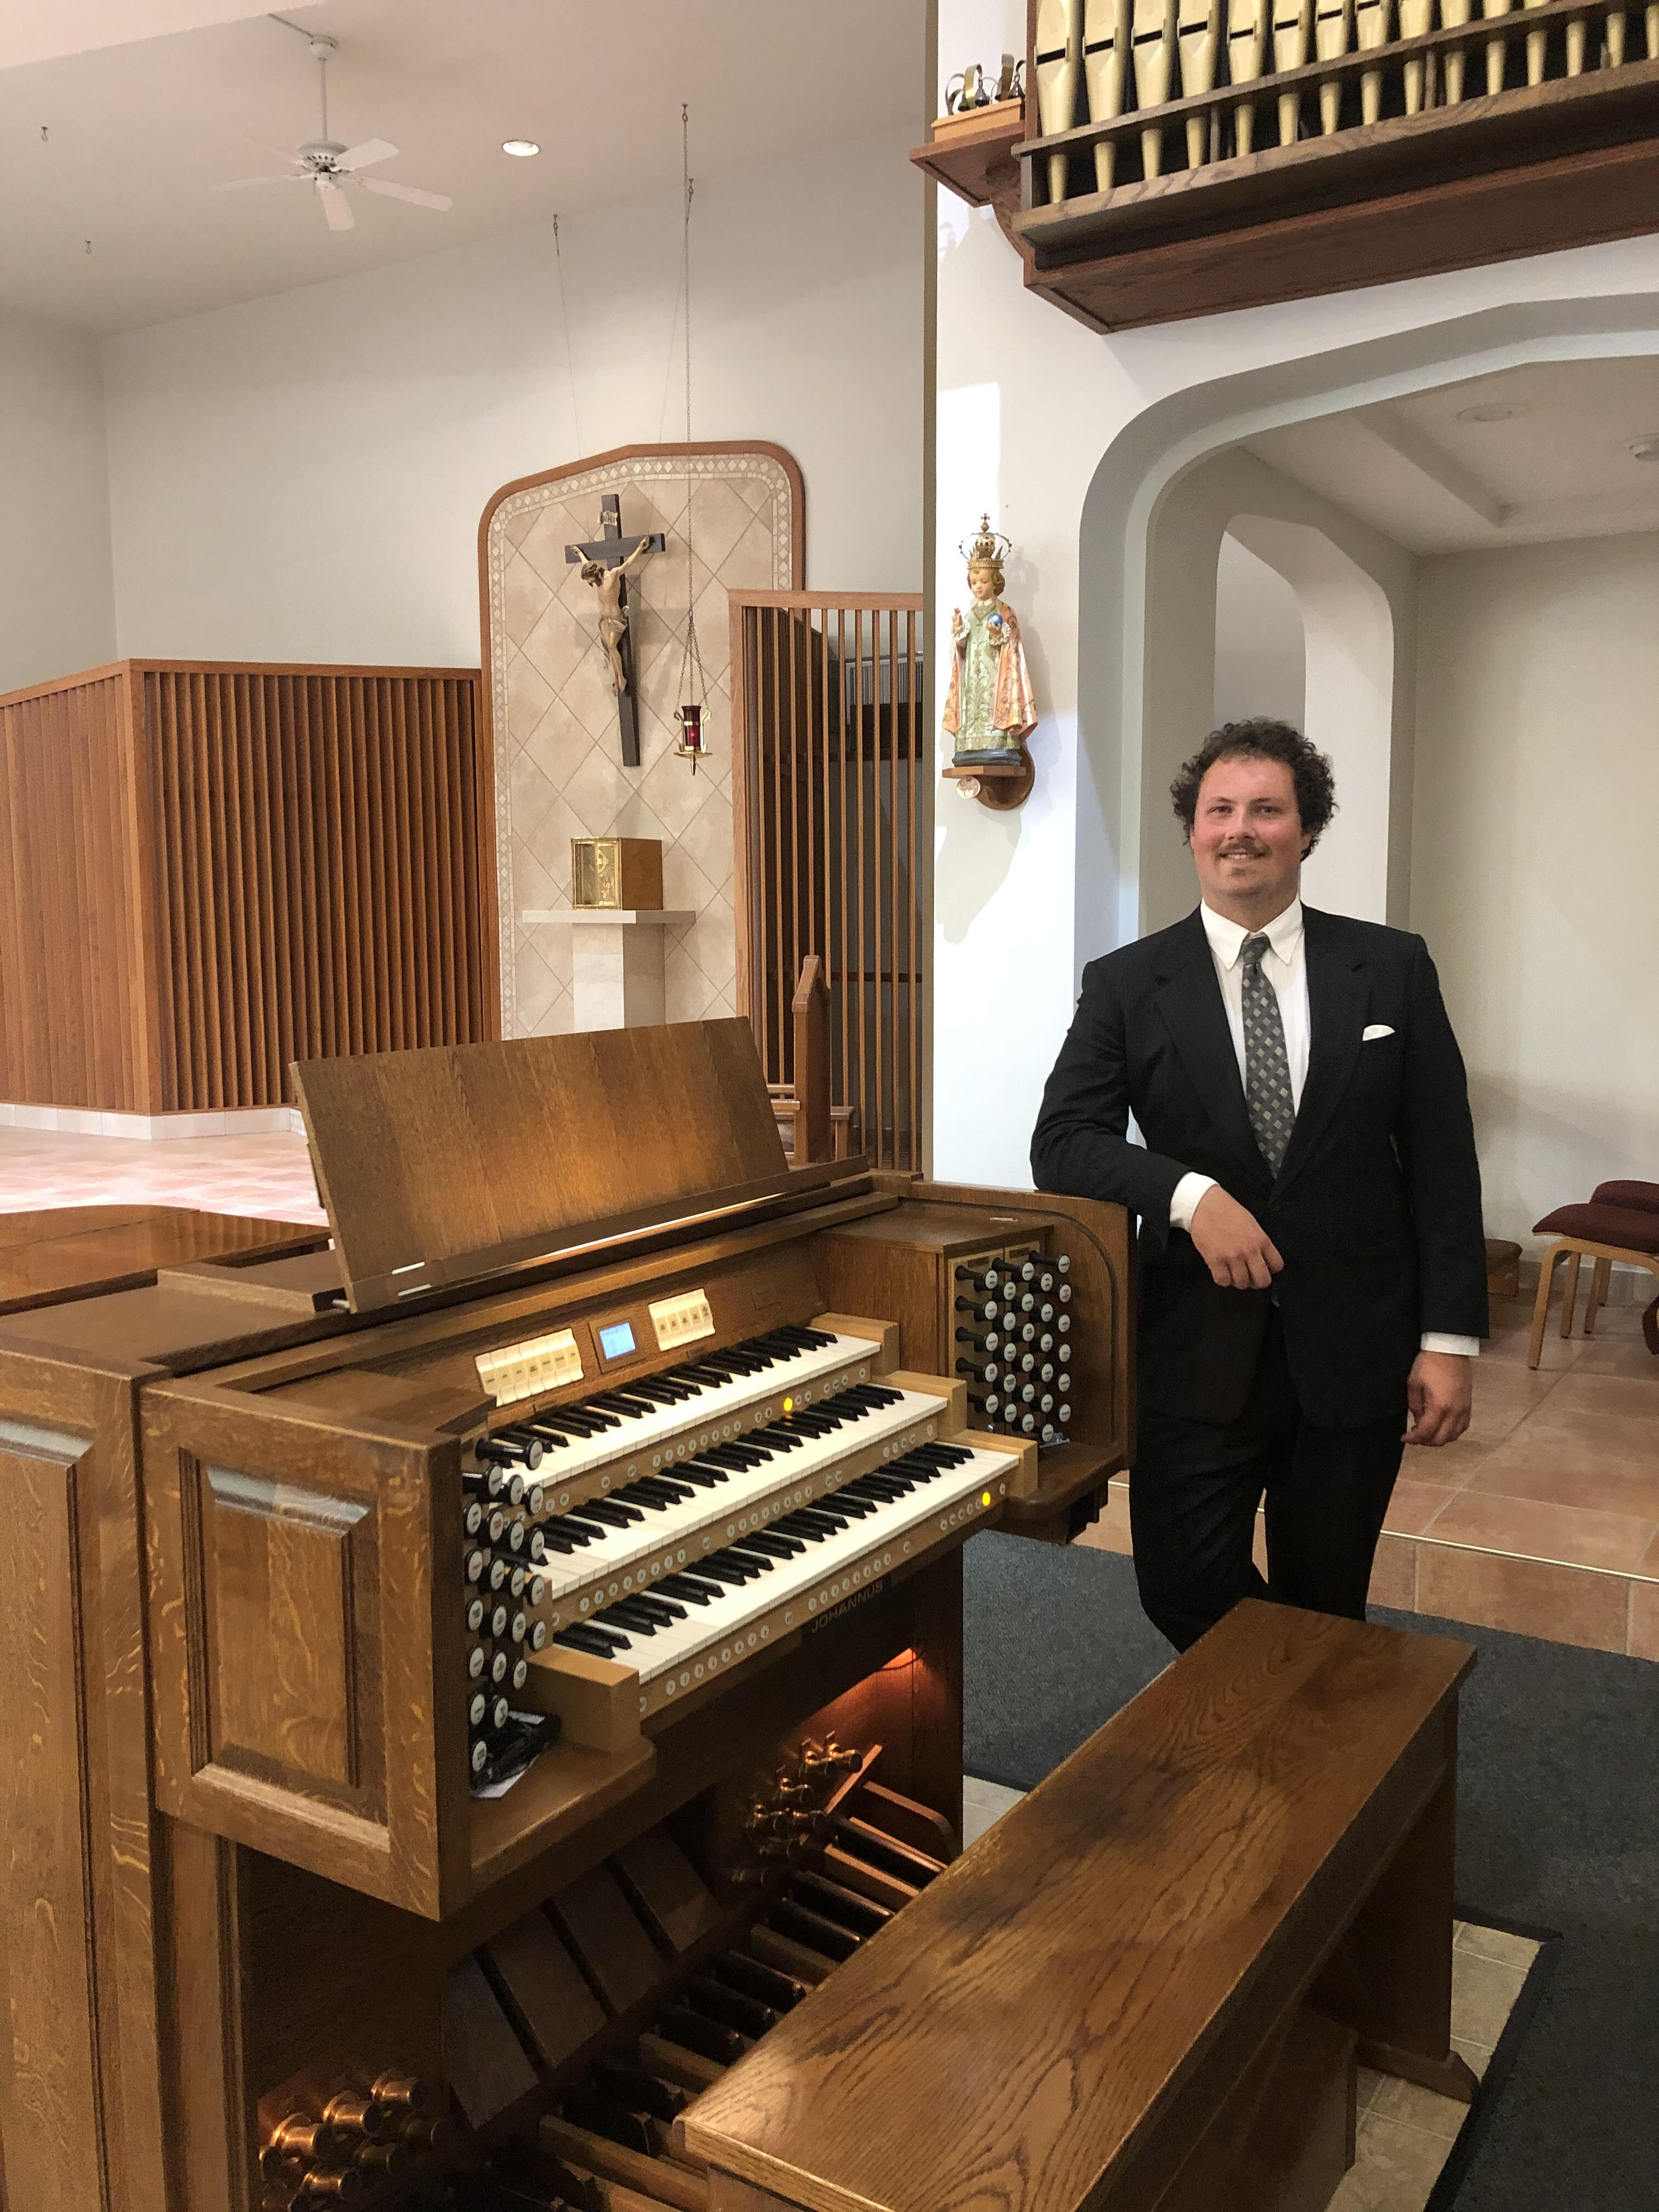 Welcome to our new Director of Music and Liturgy, Alex Nist!